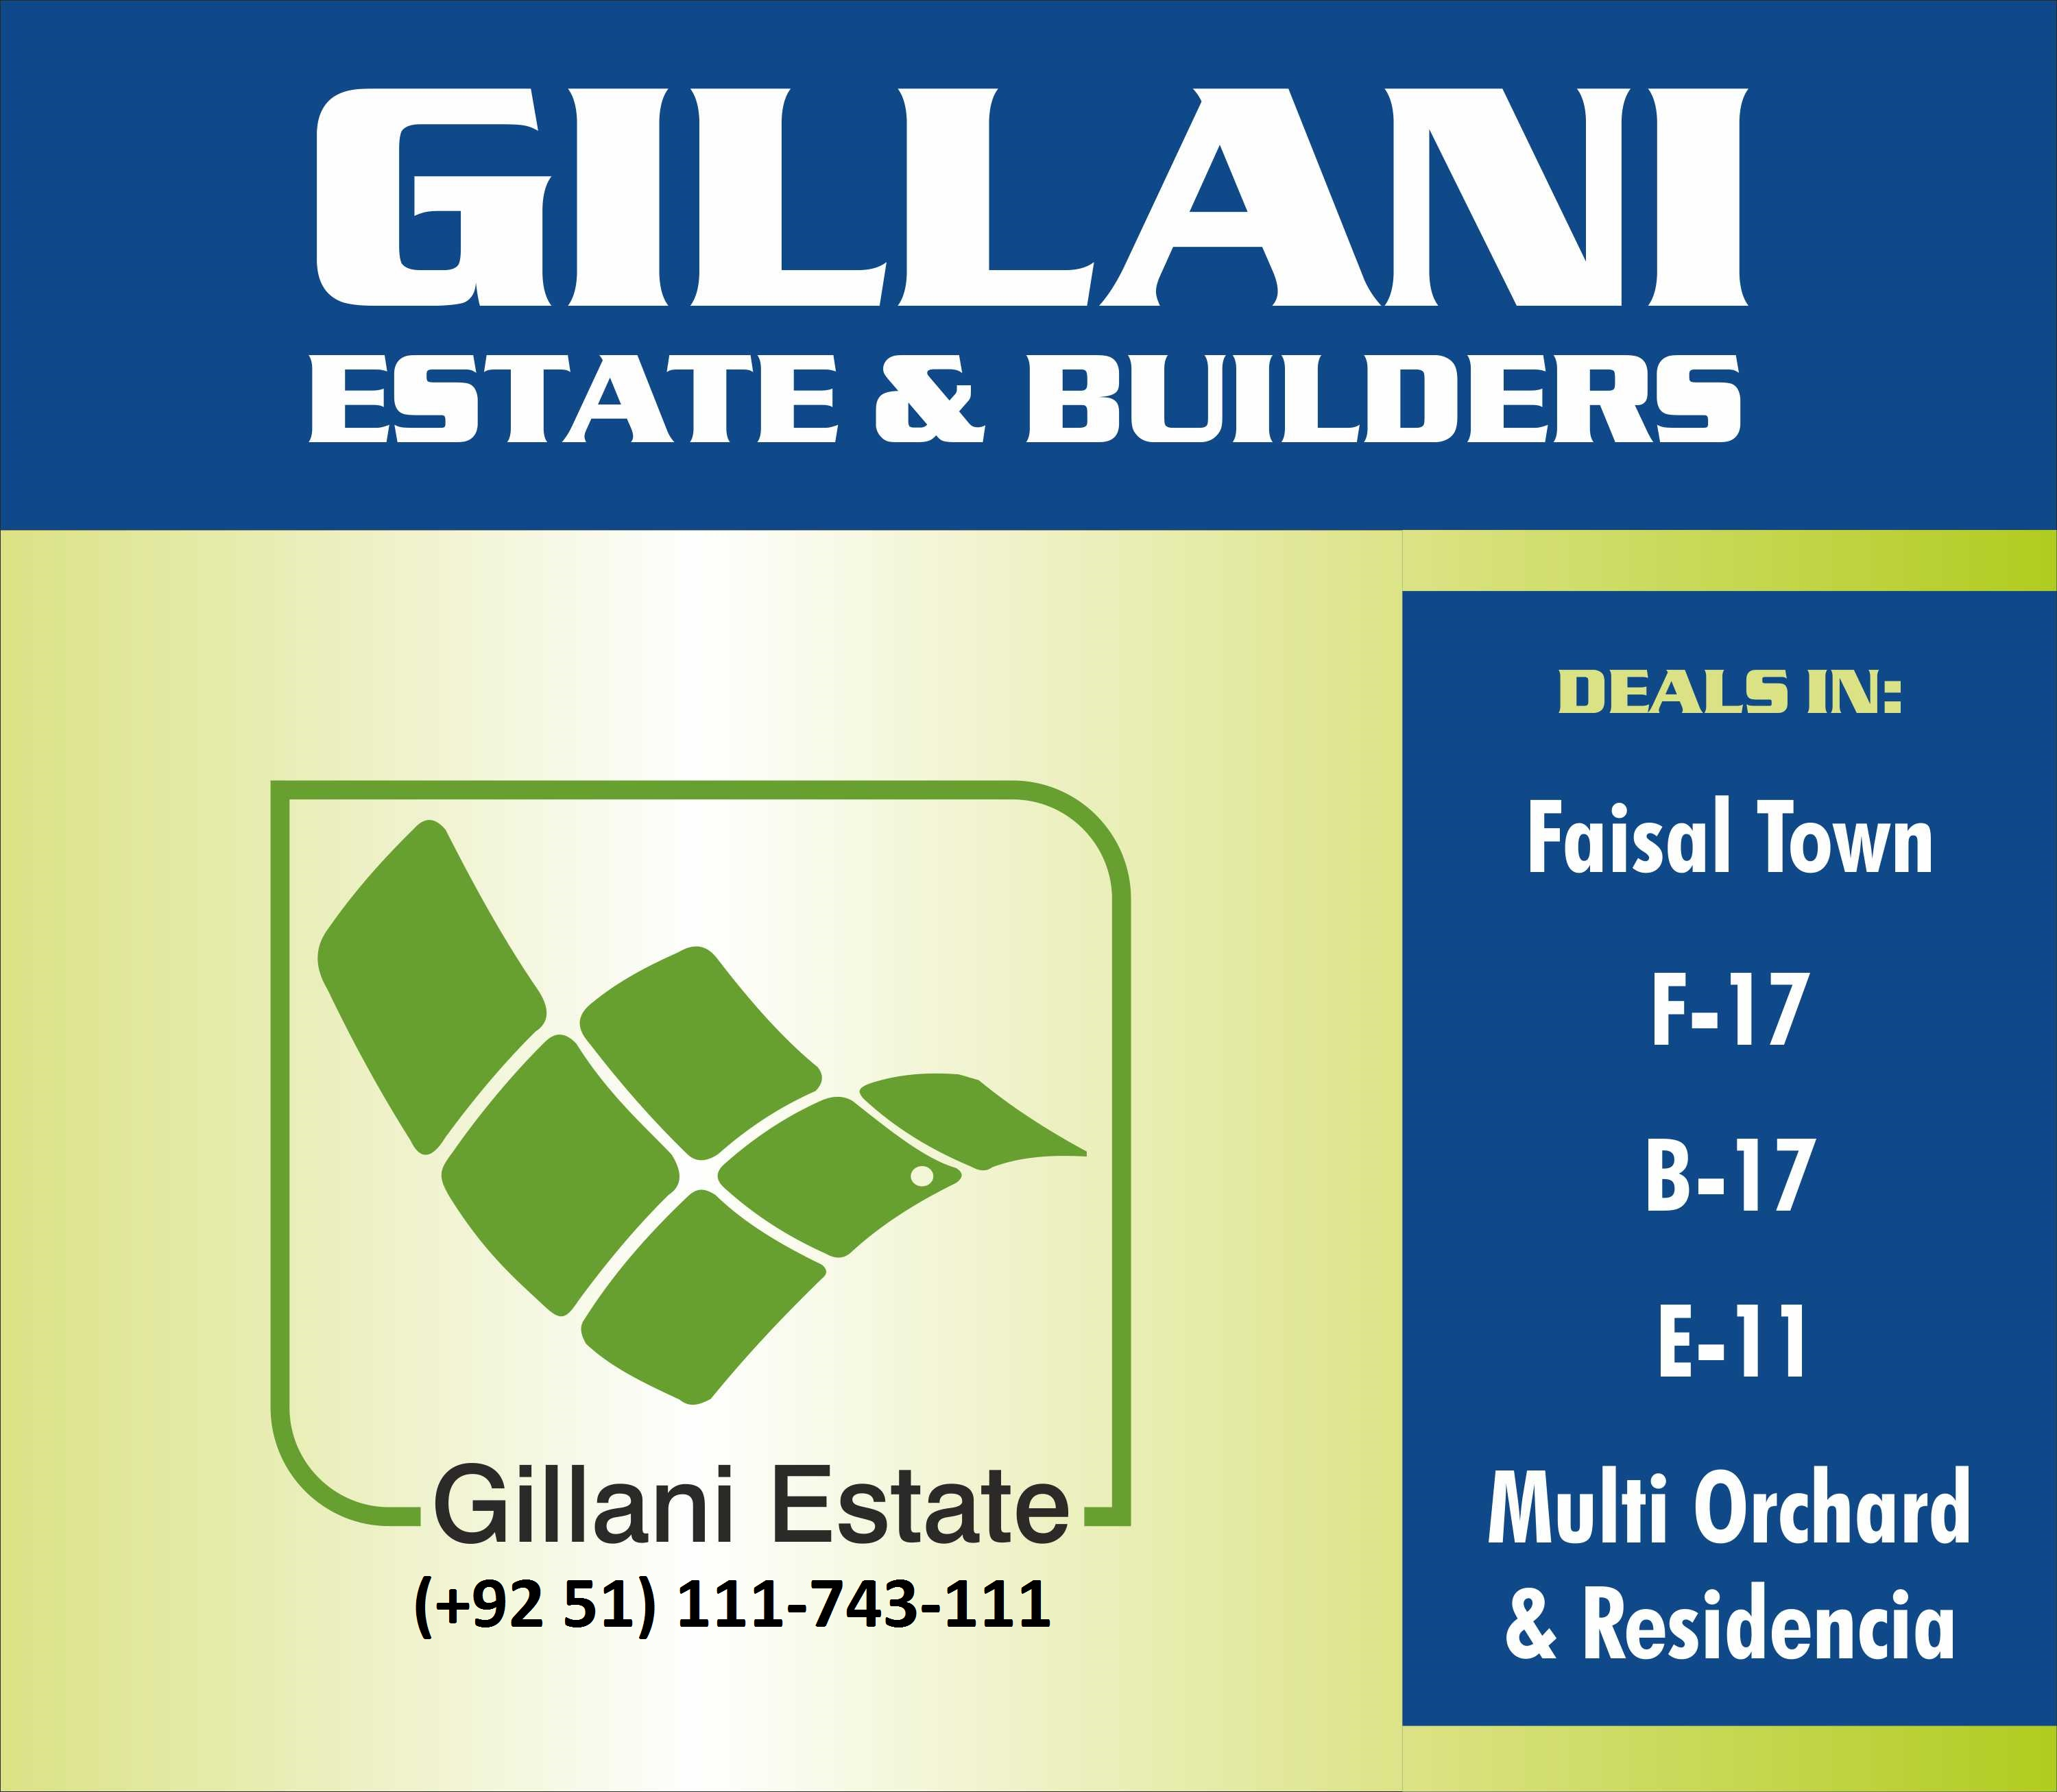 Foto de Gillani Estate & Builders